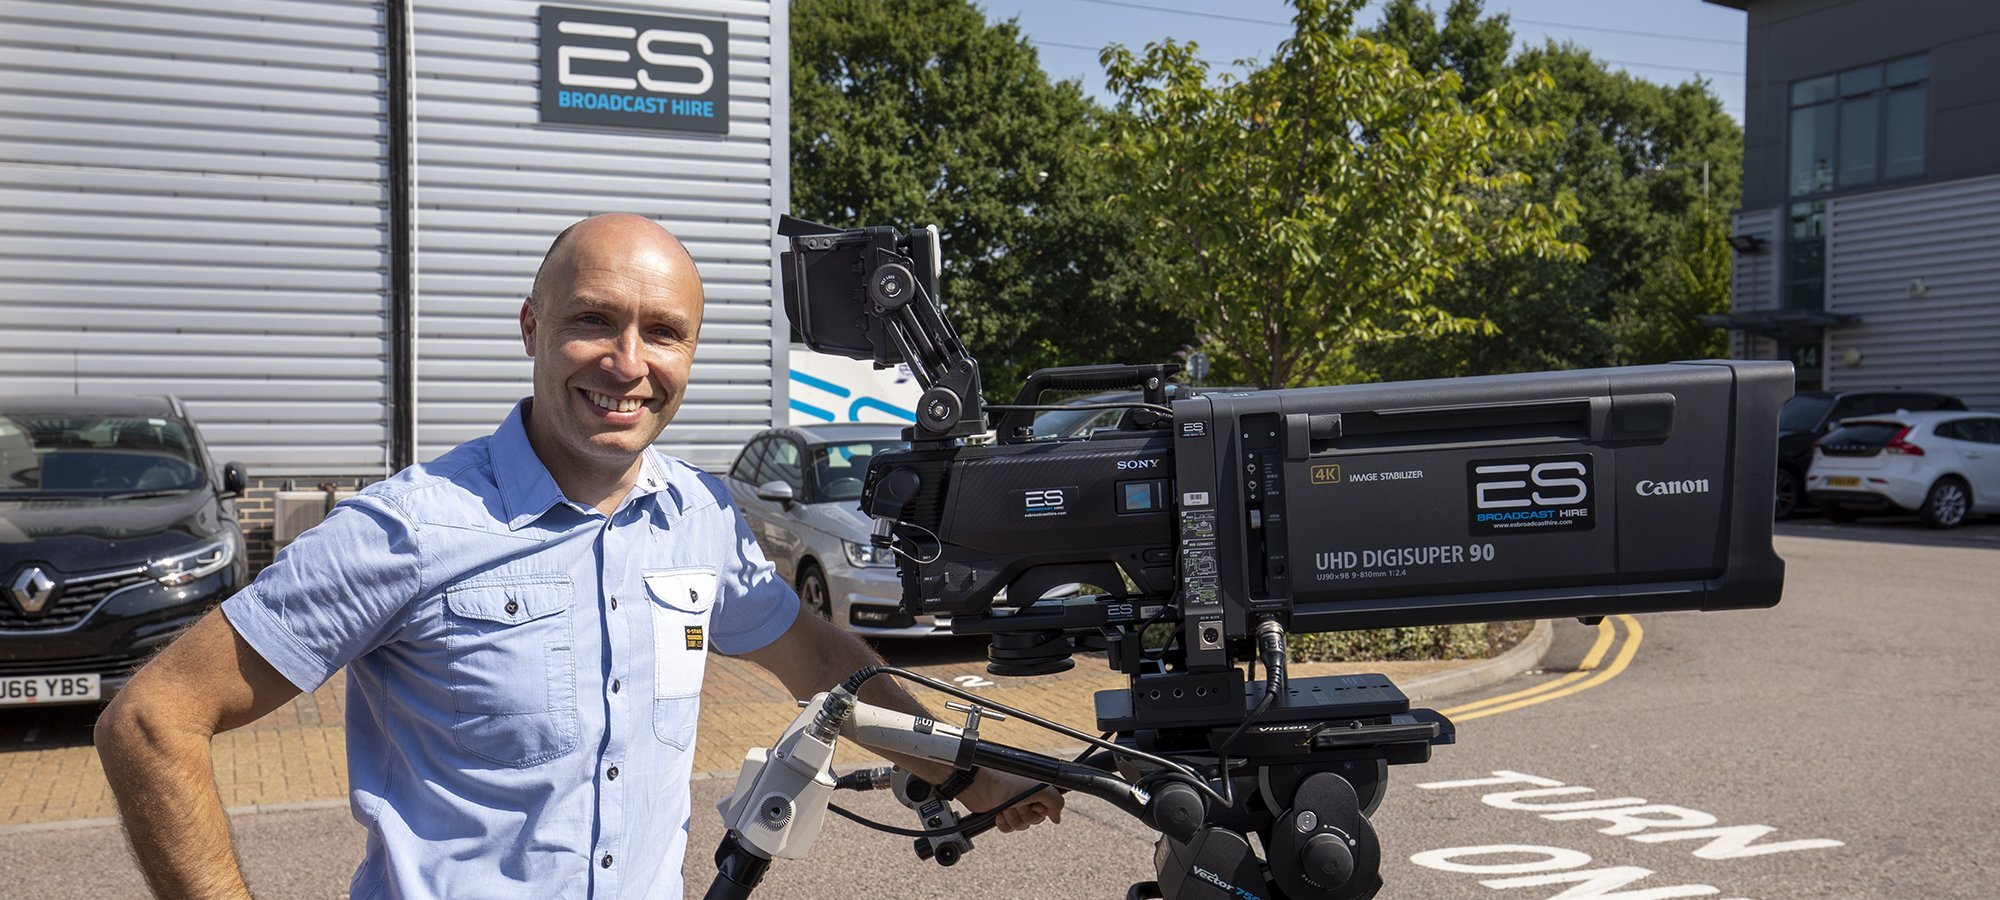 Andy Scott, ES Broadcast Hire GEneral Manager, with a Sony HDC-3500 UHD camera channel